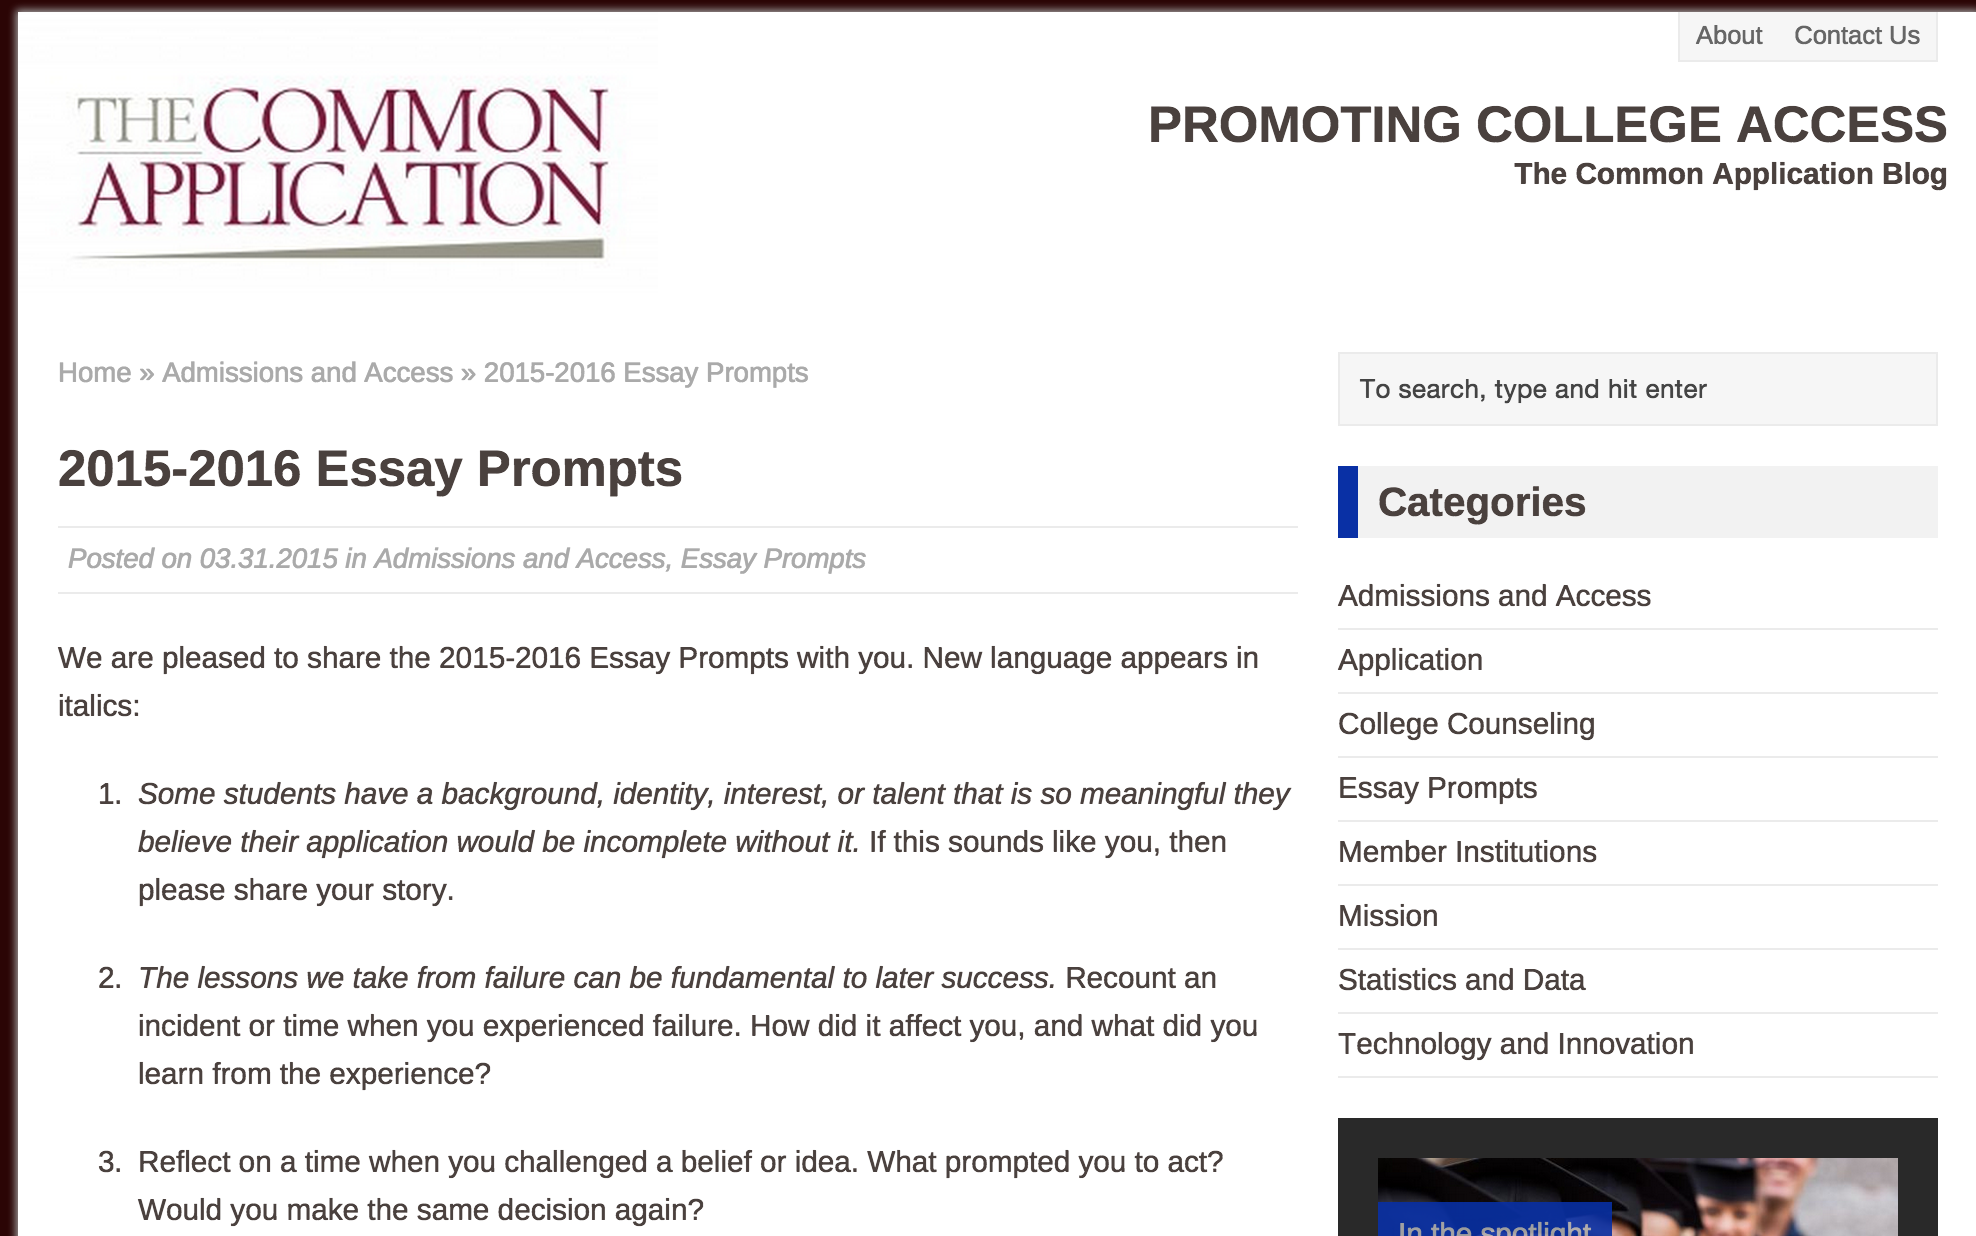 007 Length Of College Essay Common App Screen Shot At Pm Excellent Full